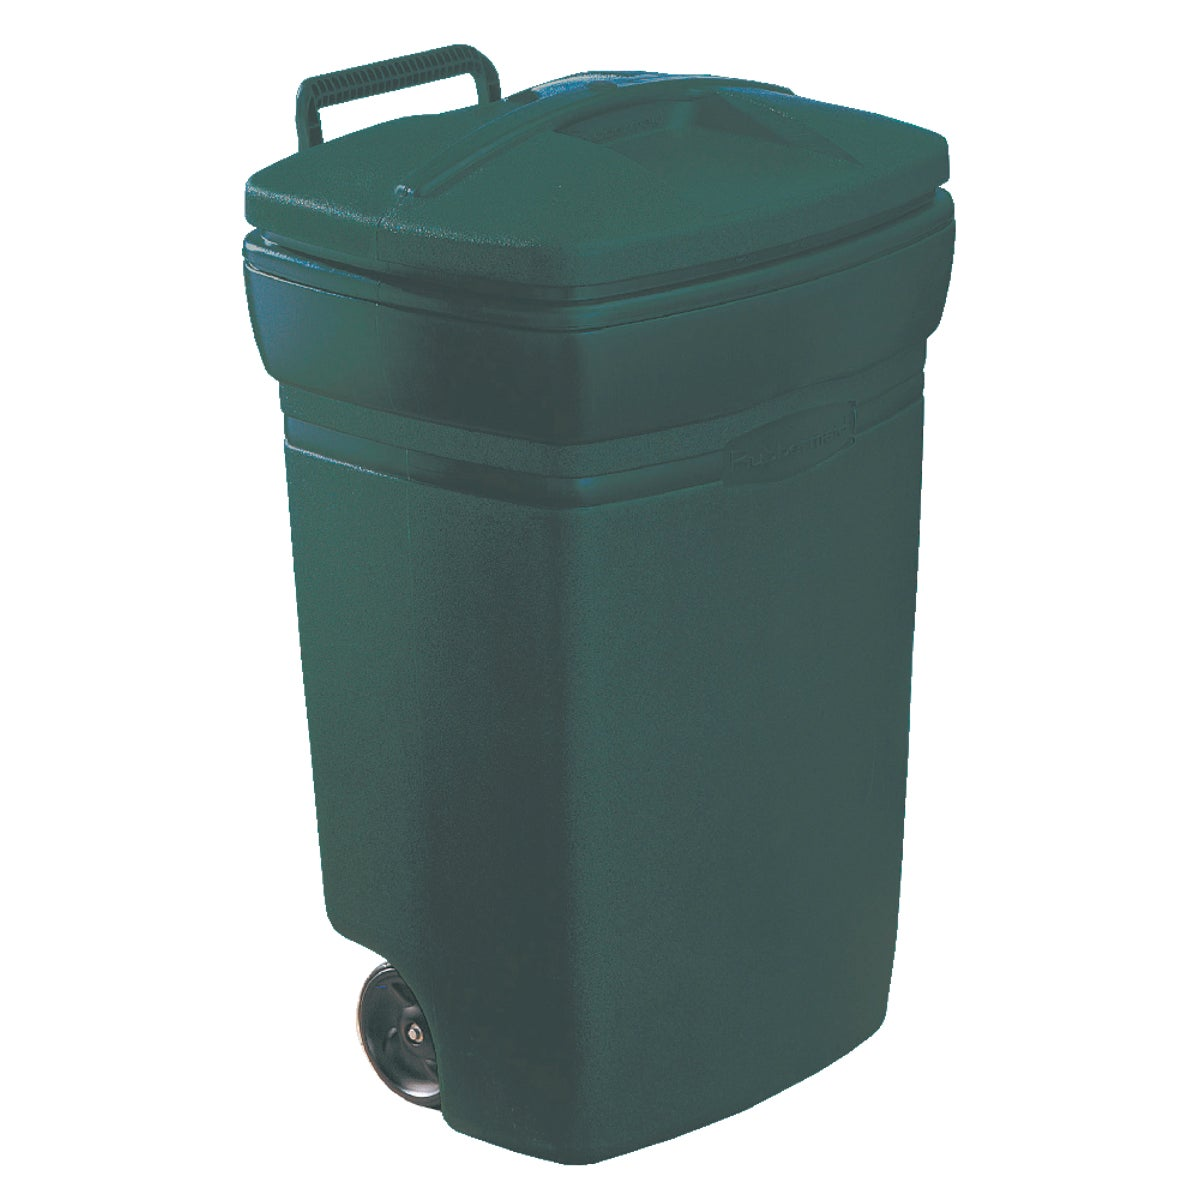 45GAL WHEELED TRASH CAN - RM134502 by United Solutions